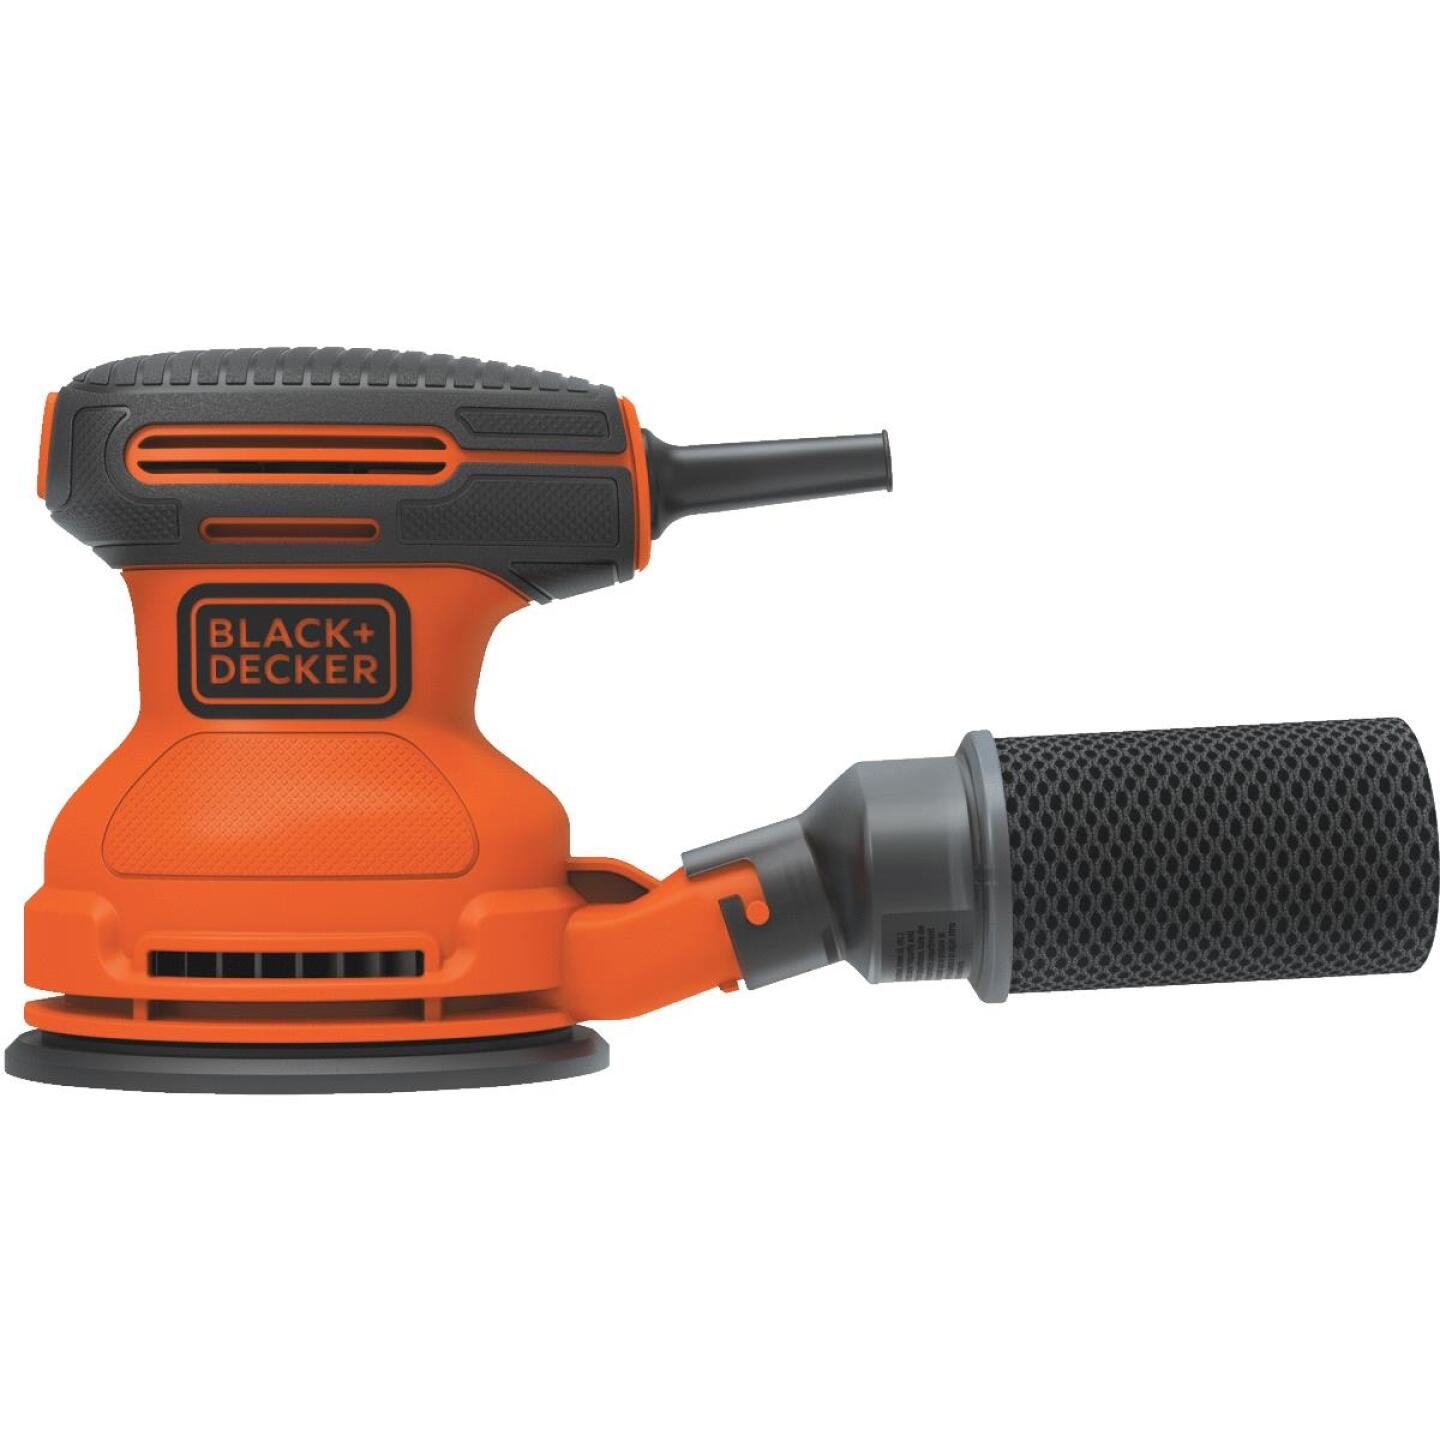 Black & Decker 5 In. 2.0A Finish Sander Image 4